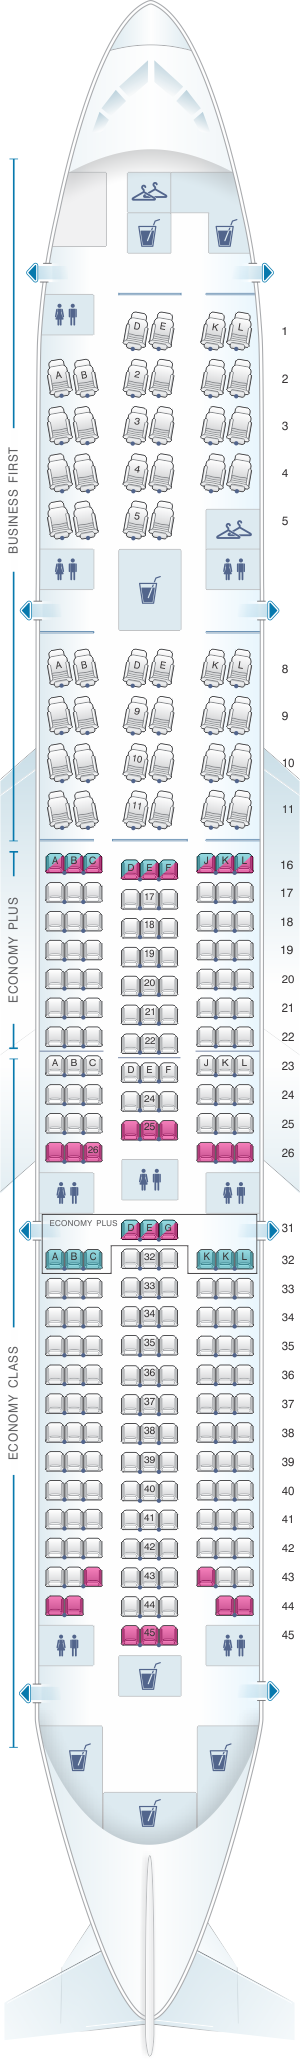 Seat map for United Airlines Boeing B777 200 (777) - version 2